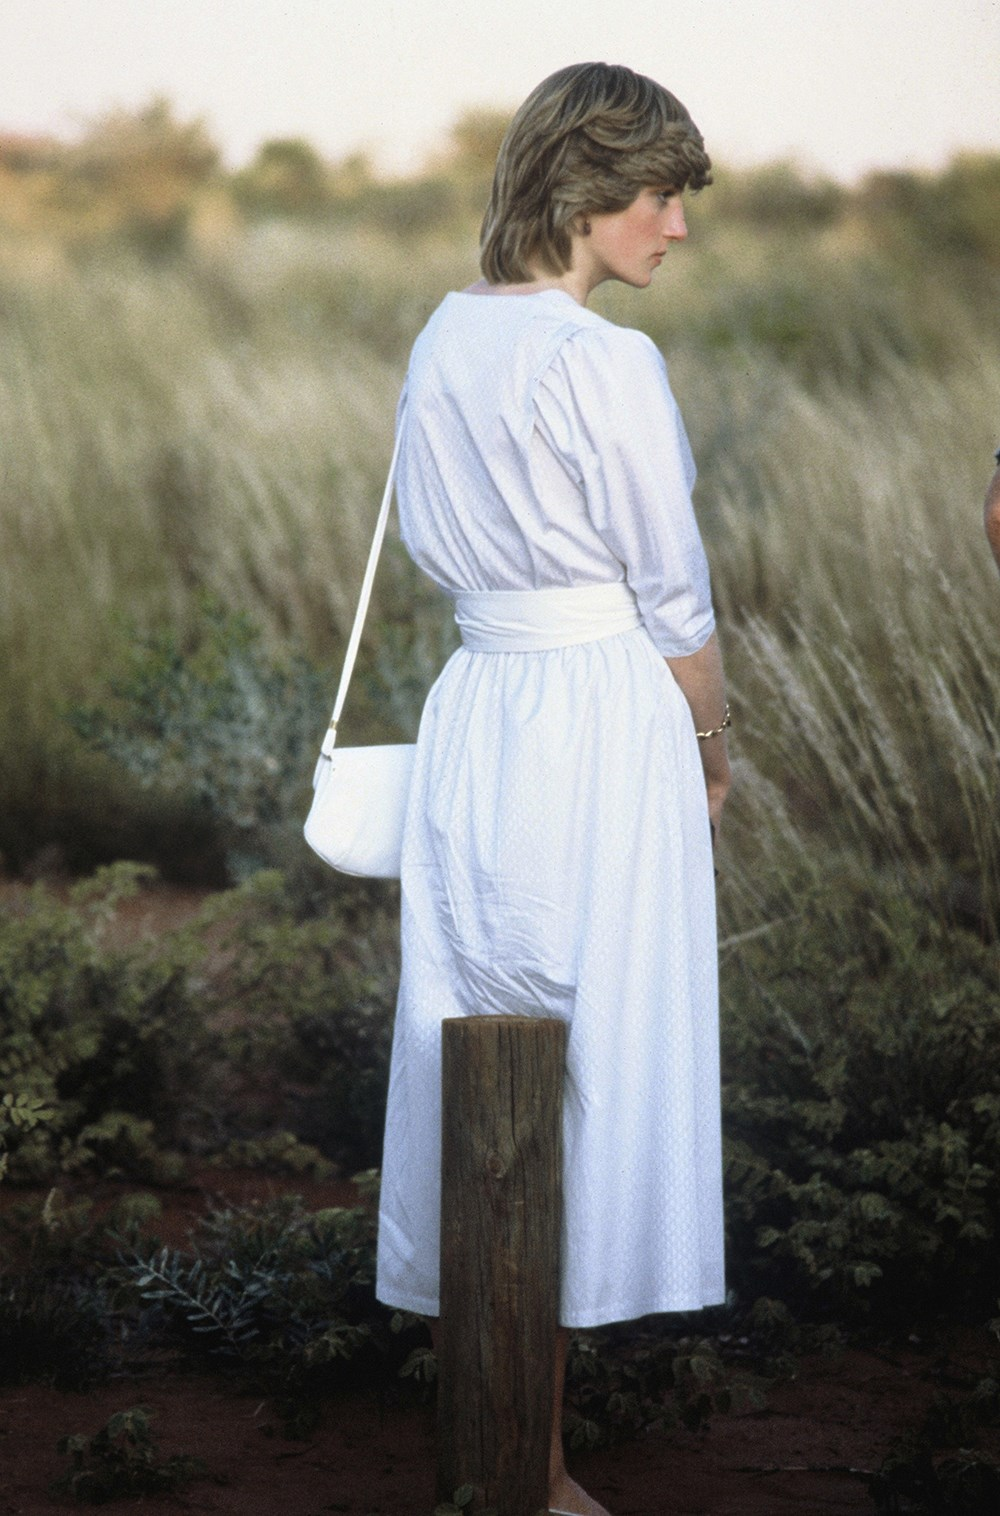 Princess Diana watches the sunset in Central Australia.